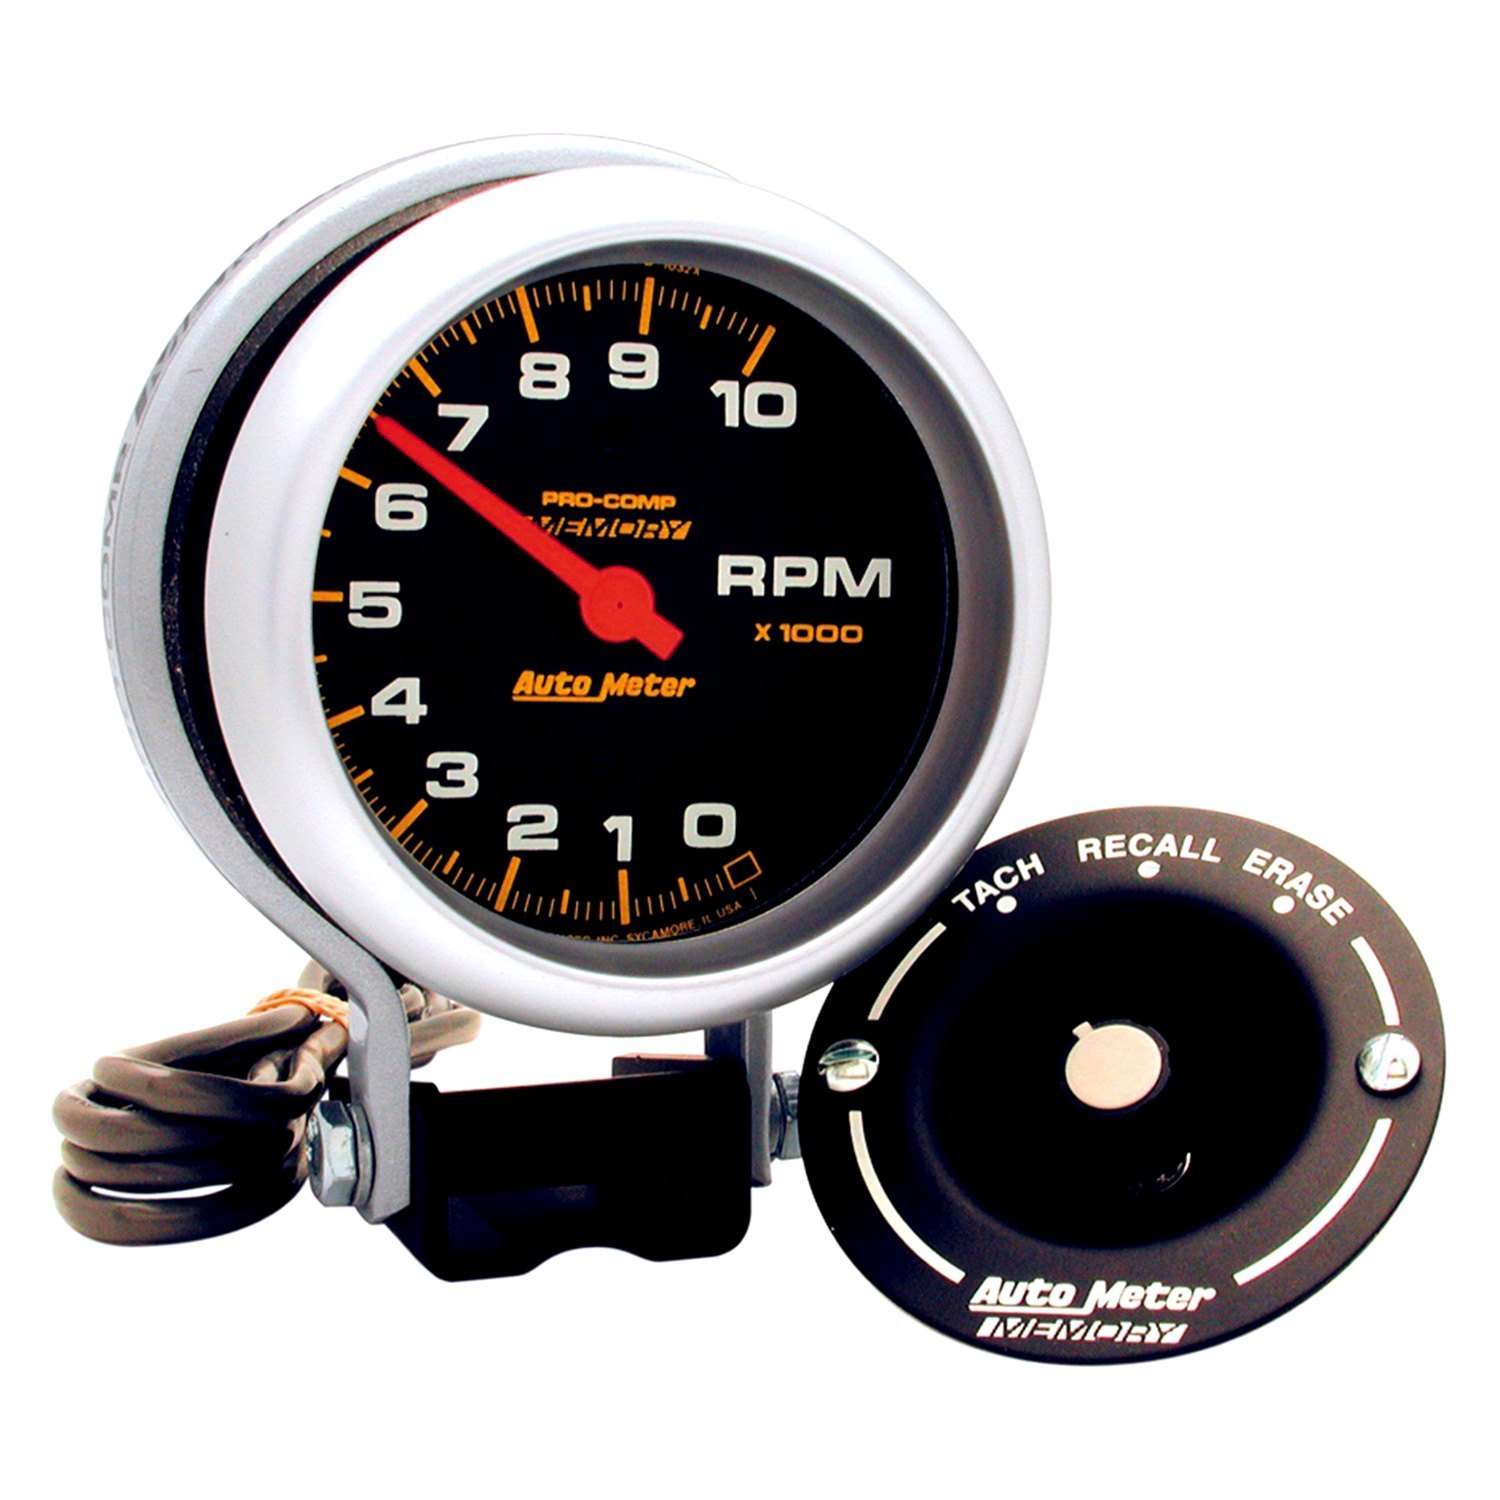 Pro Comp Auto Meter Tach Wiring Guide And Troubleshooting Of Gauge Diagram As Well Sport P U00ae 6601 Series 3 4 Quot Pedestal 2